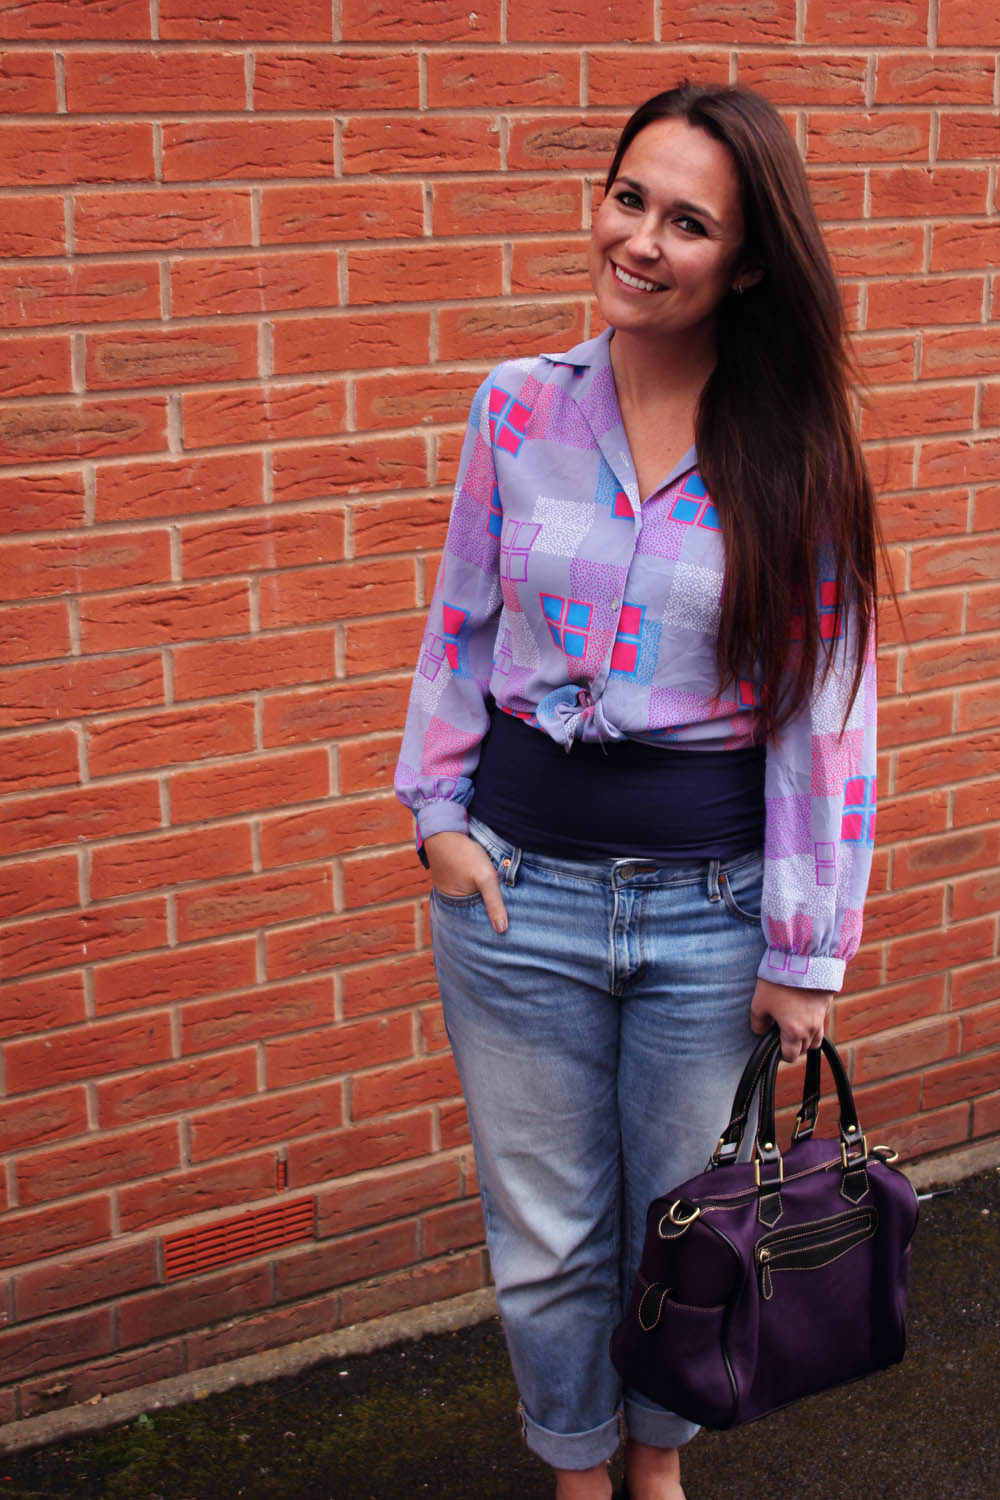 Vintage Blouse and Purple Bag